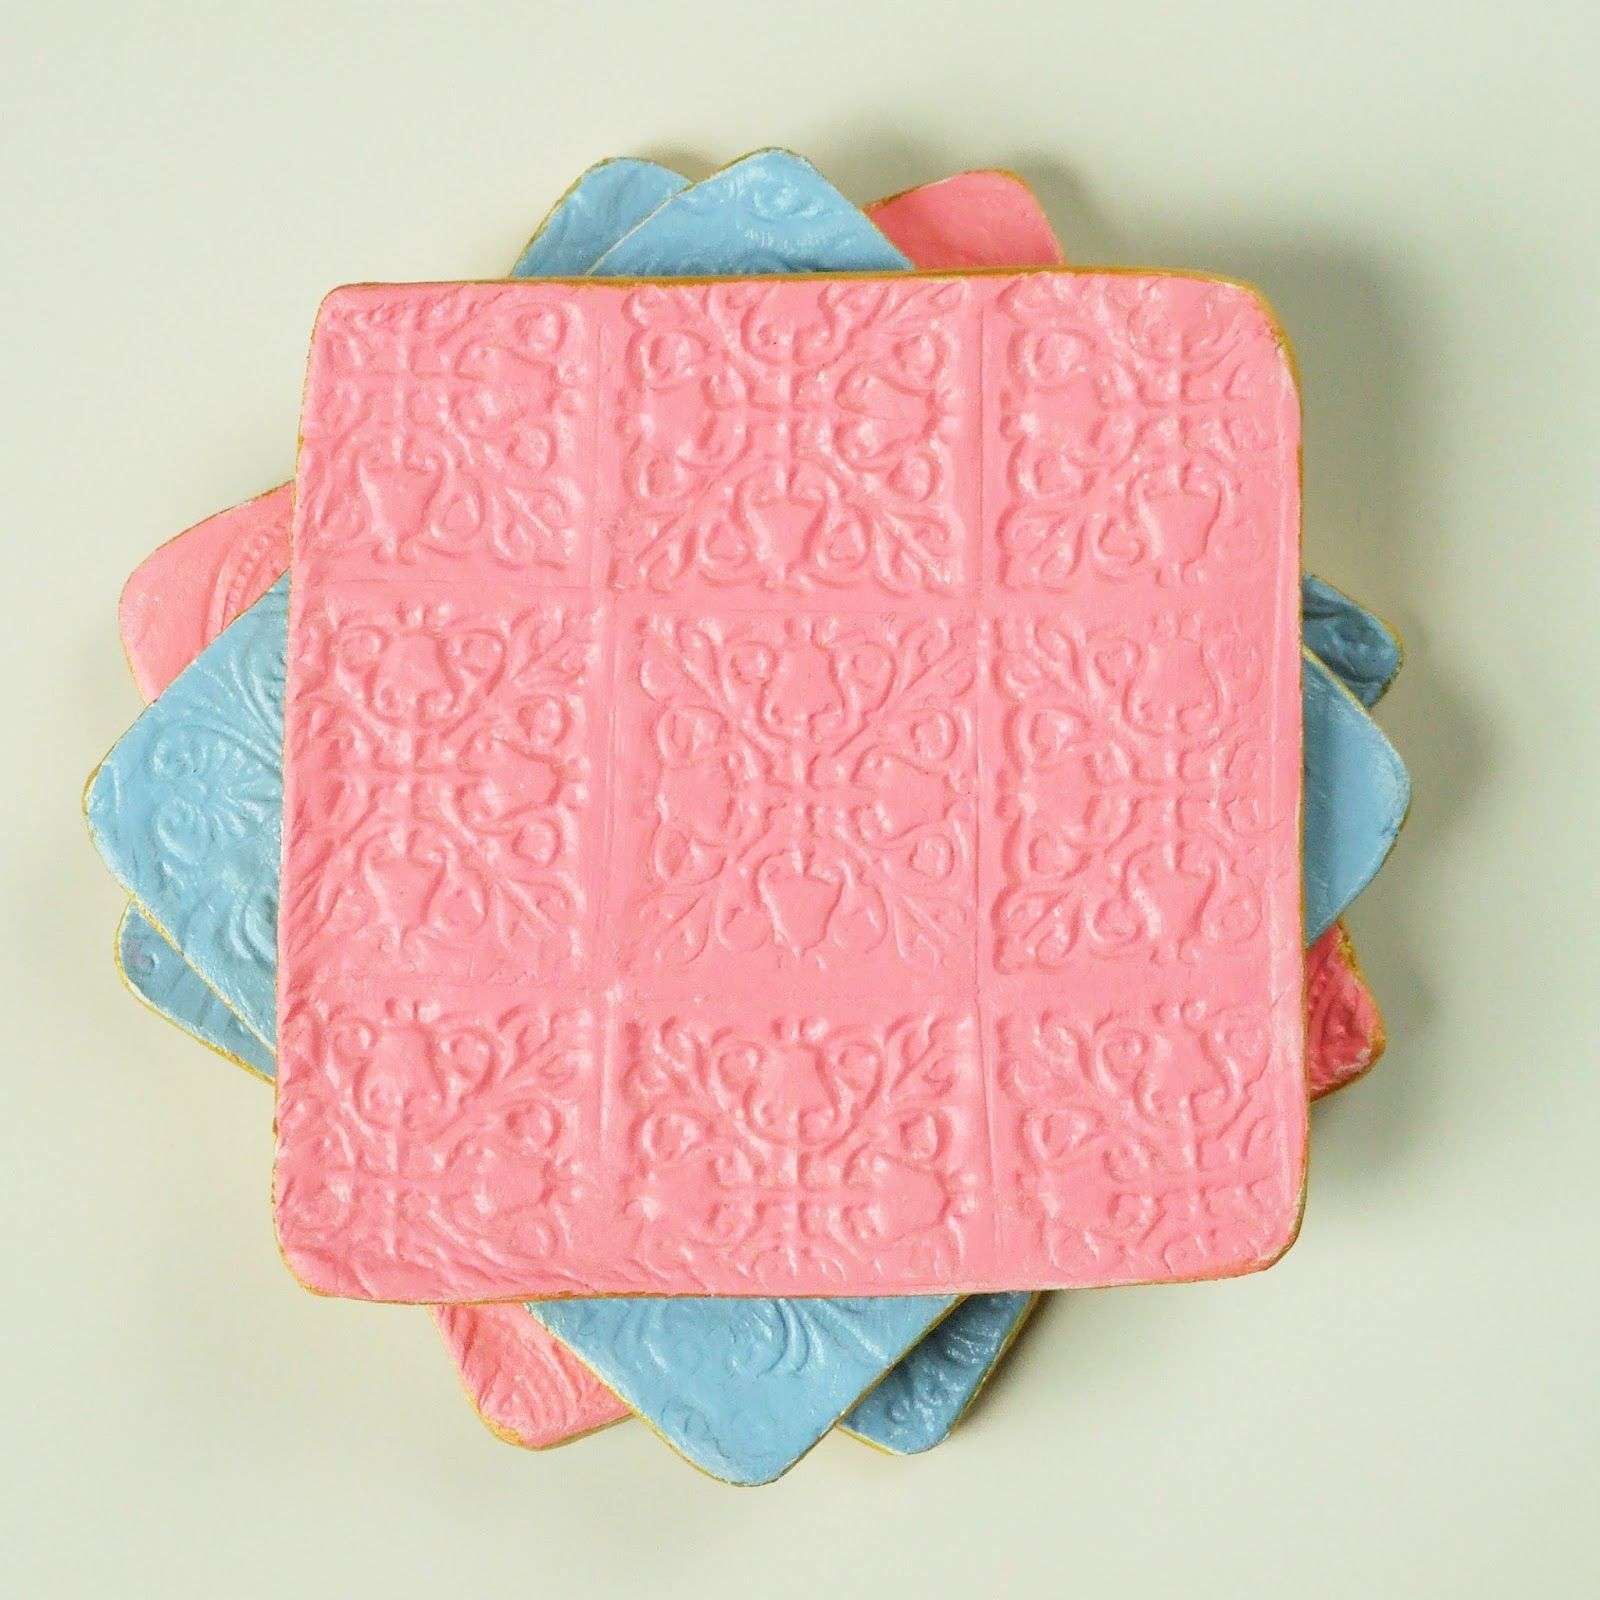 DIY STAMPED CLAY COASTERS. (With images) Diy stamp, Clay